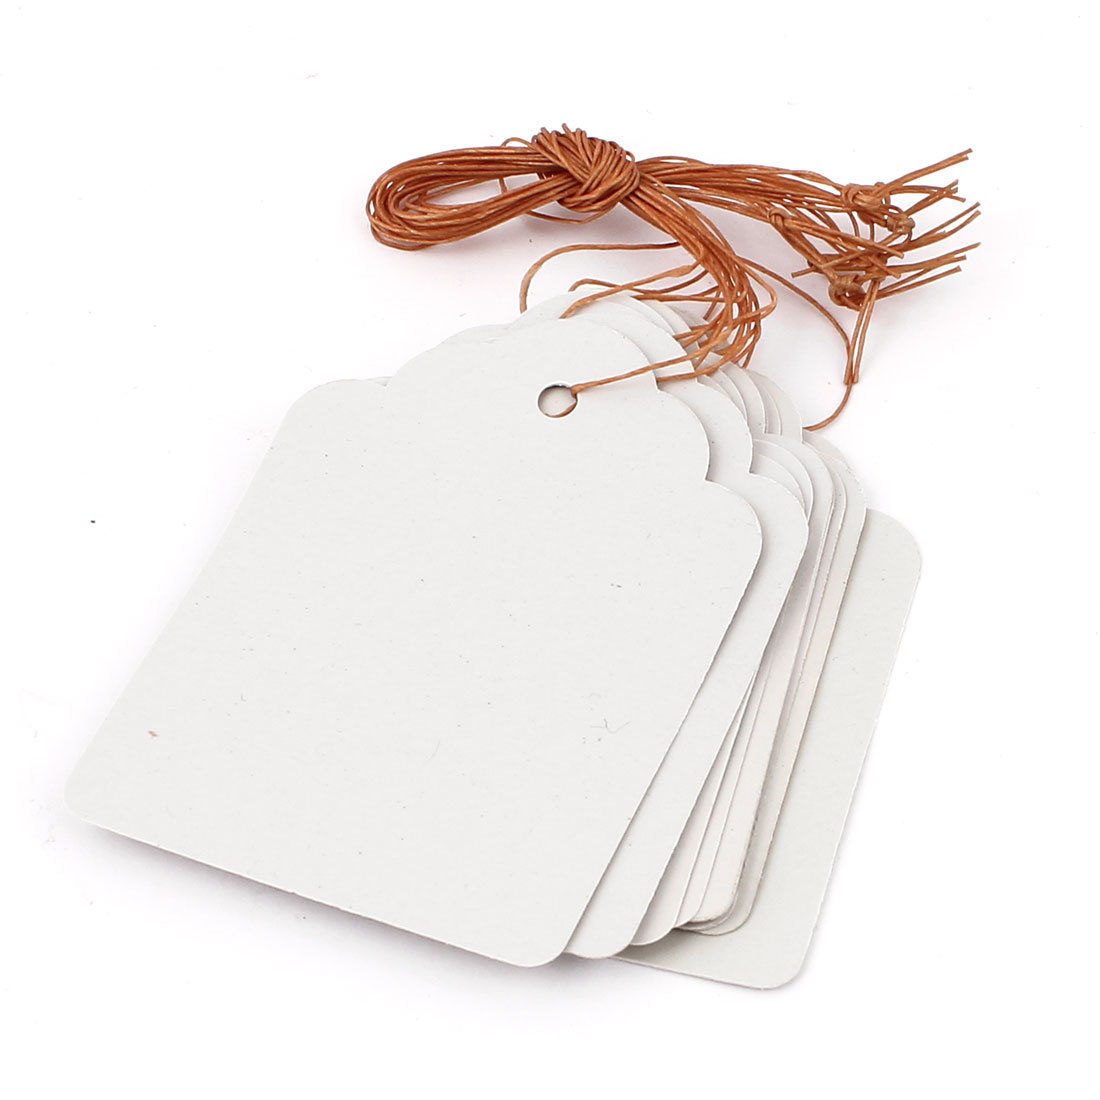 7cmx5cm Plastic Nursery Garden Plant Seed Hanging Tag Label Marker White 10Pcs